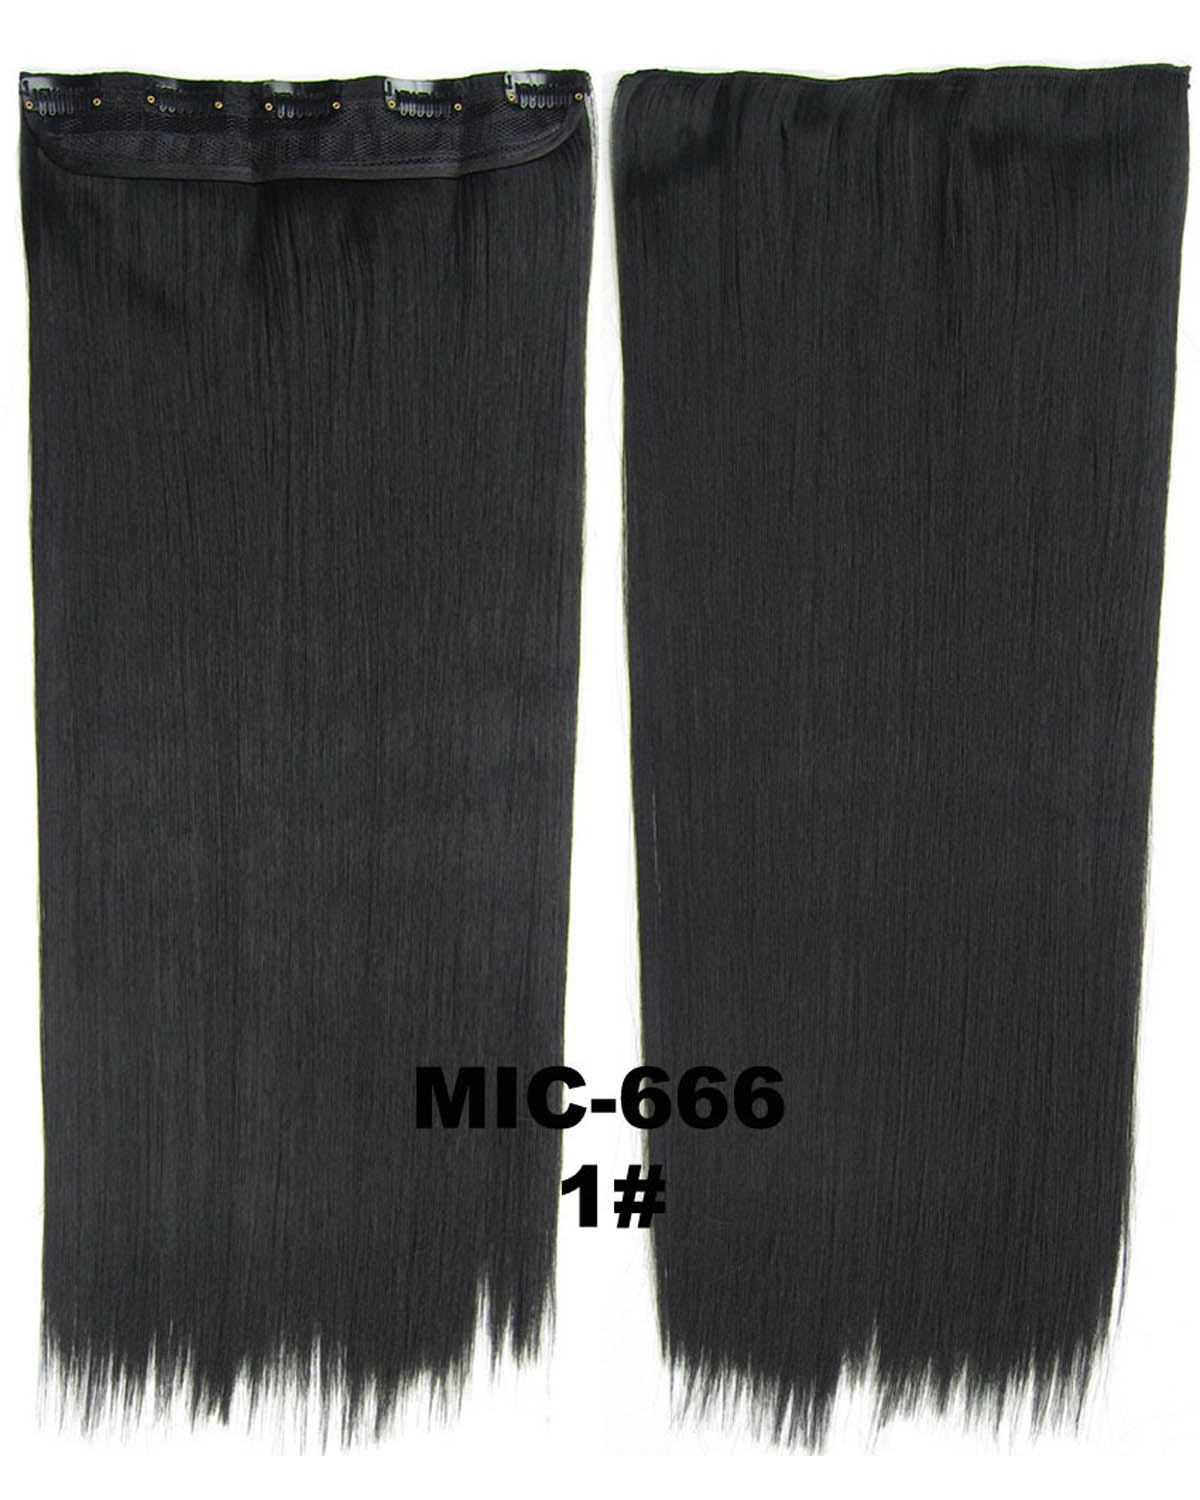 24 inch Neat Straight Long One Piece 5 Clips Clip in Synthetic Hair Extension  1# 100g